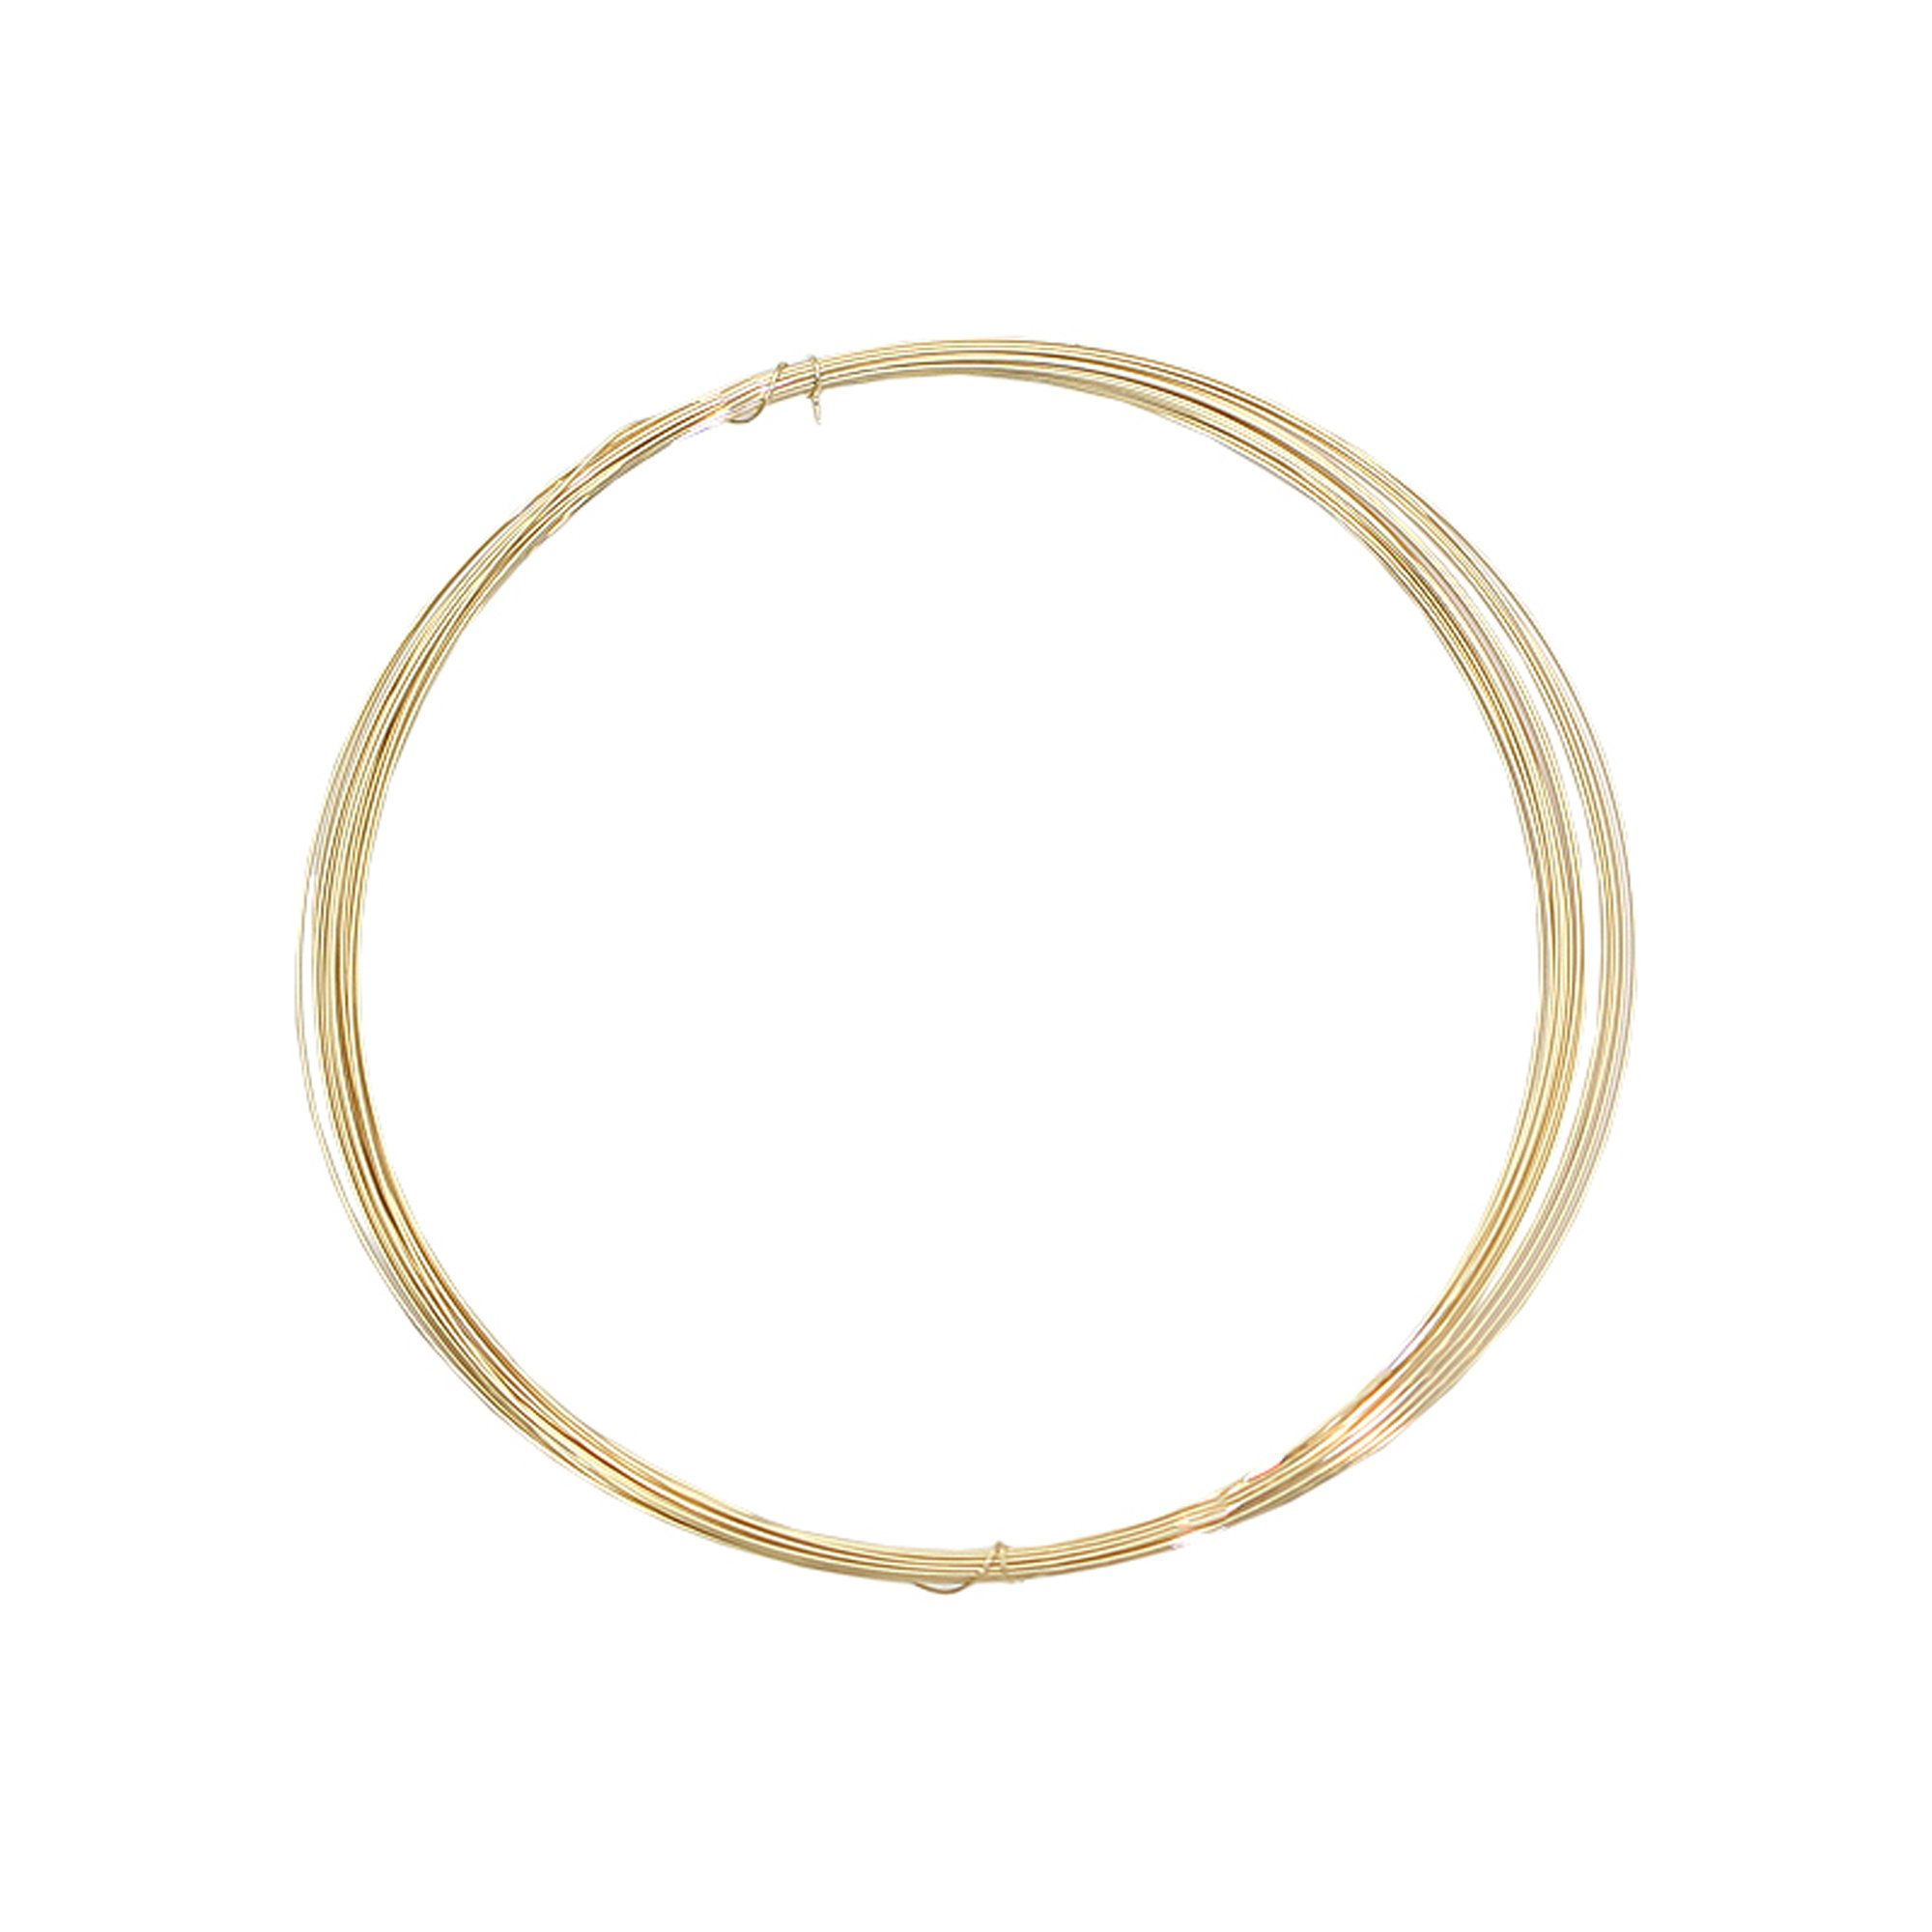 Wholesale Jewelry Gold Filled 14k Gold Filled Wire Round 19 28 Gauge For Necklace Pendant